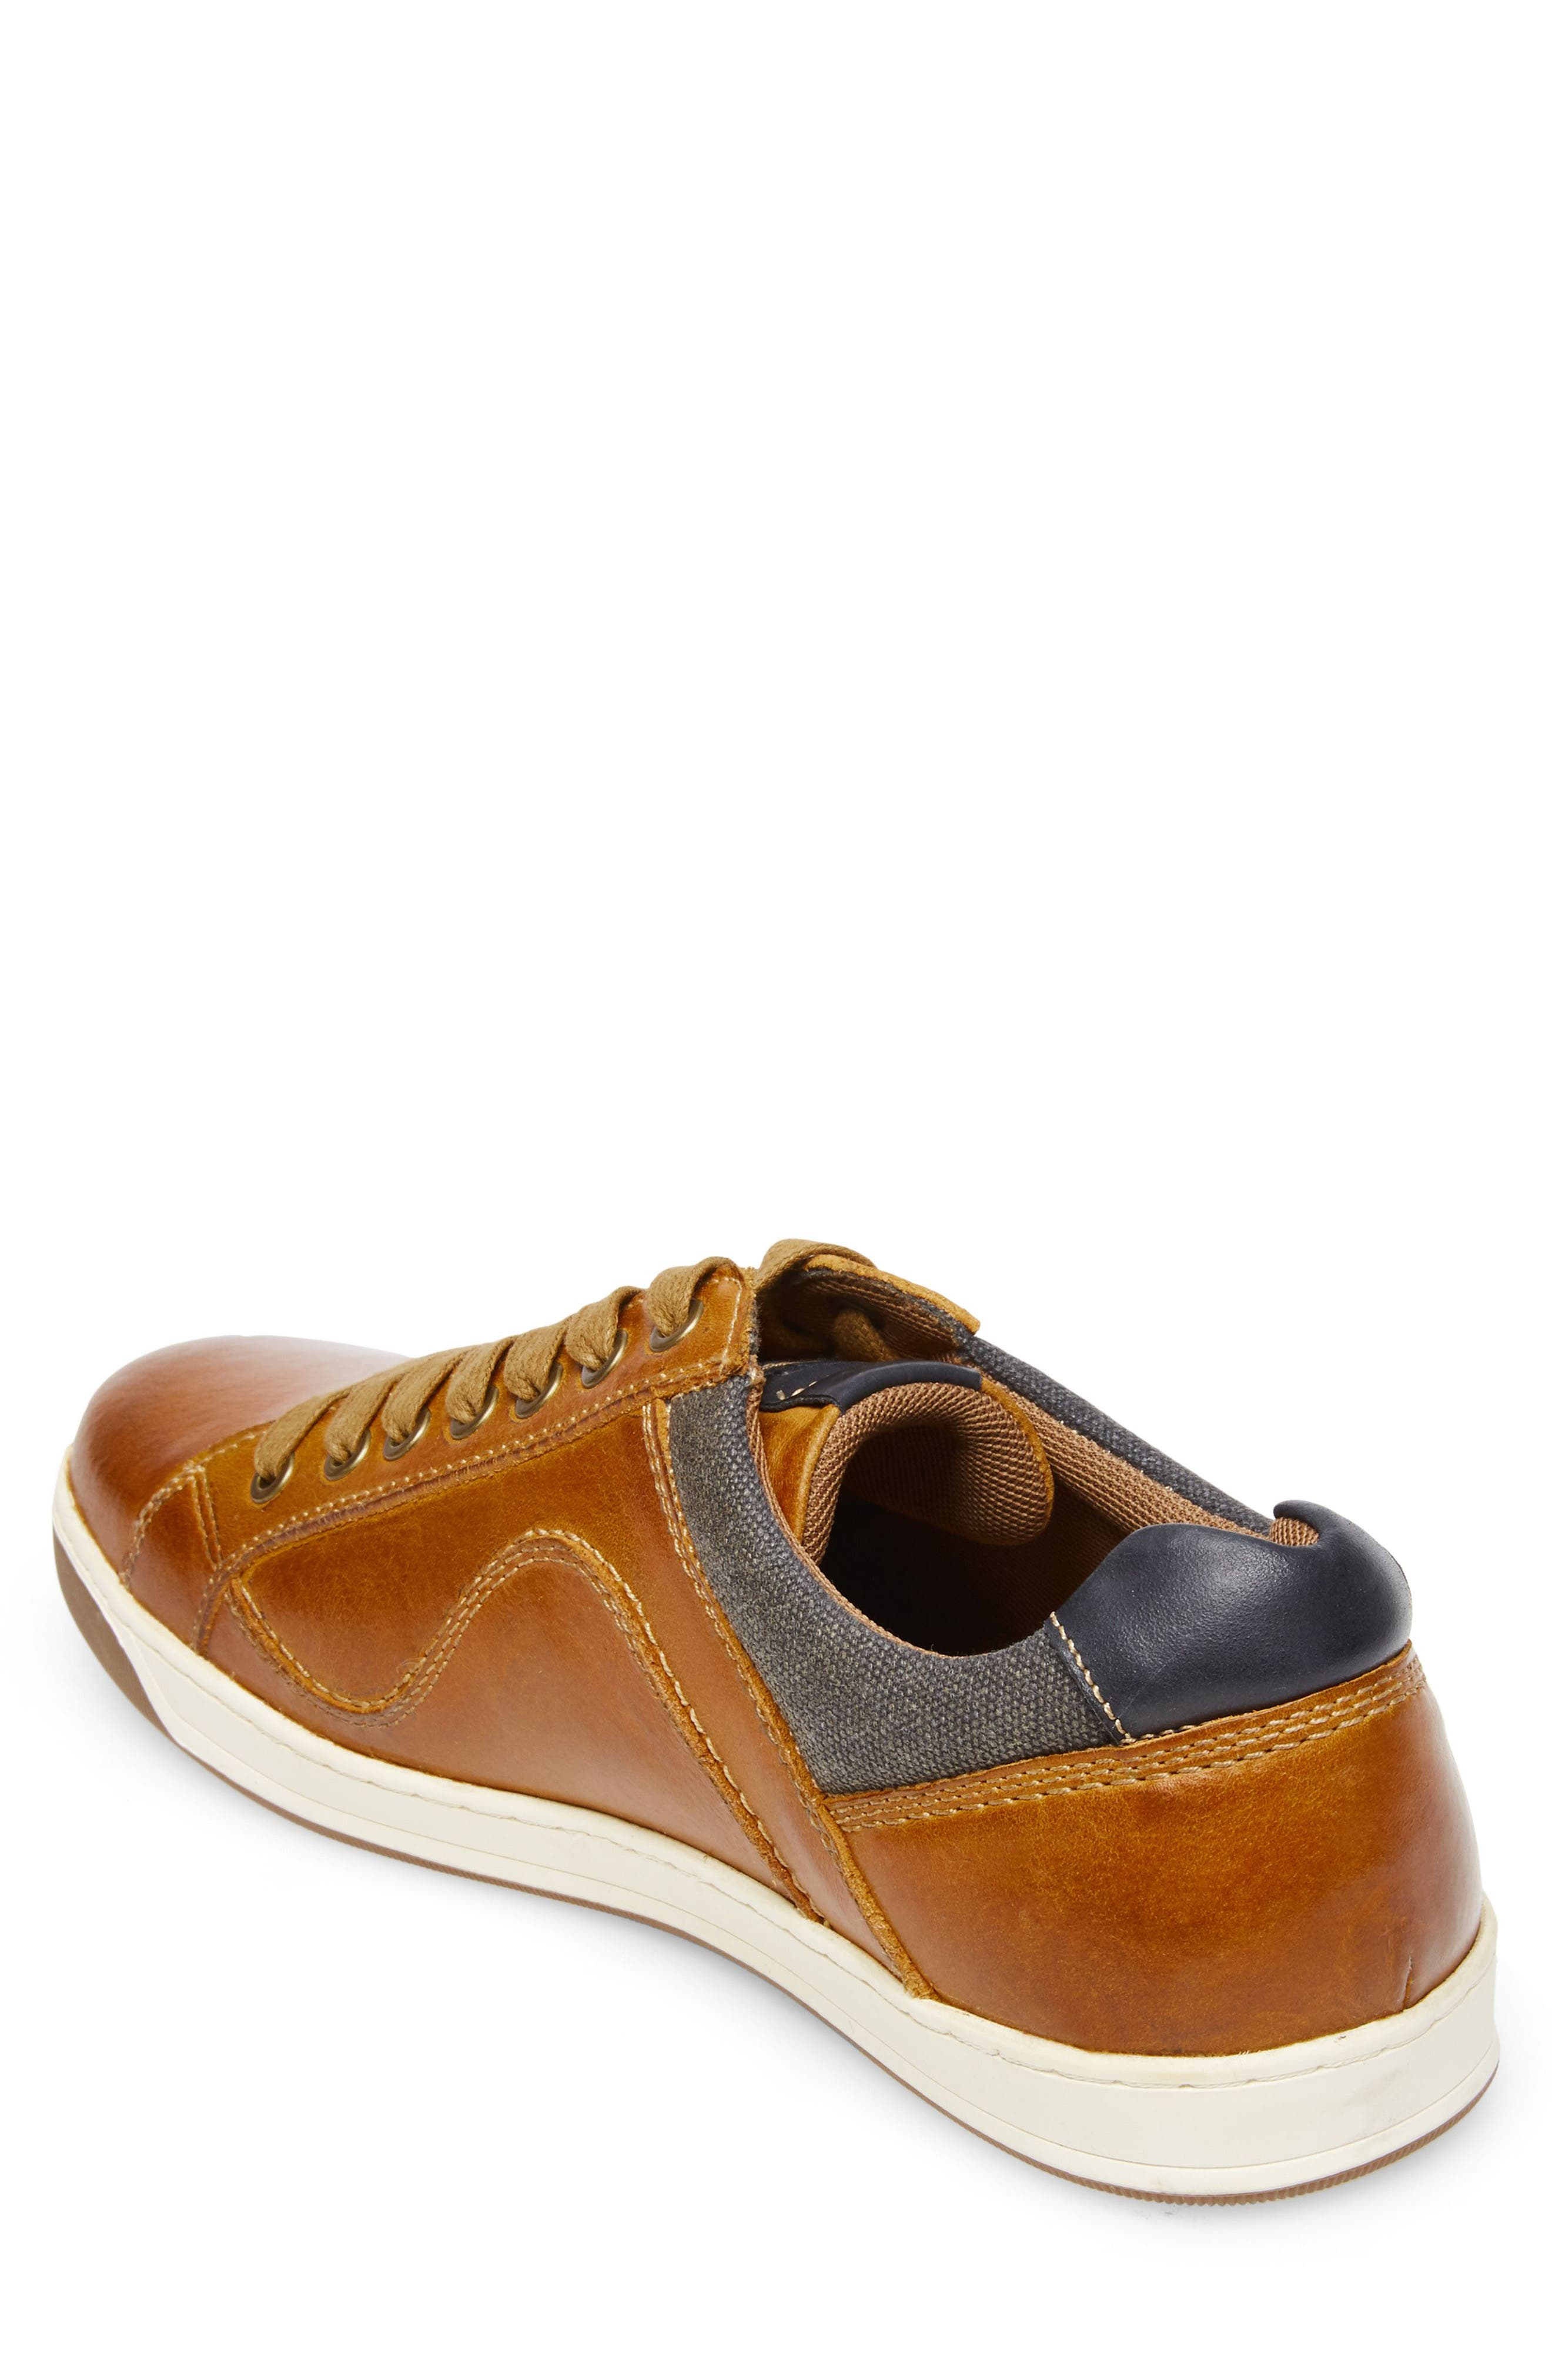 Chater Low Top Sneaker,                             Alternate thumbnail 4, color,